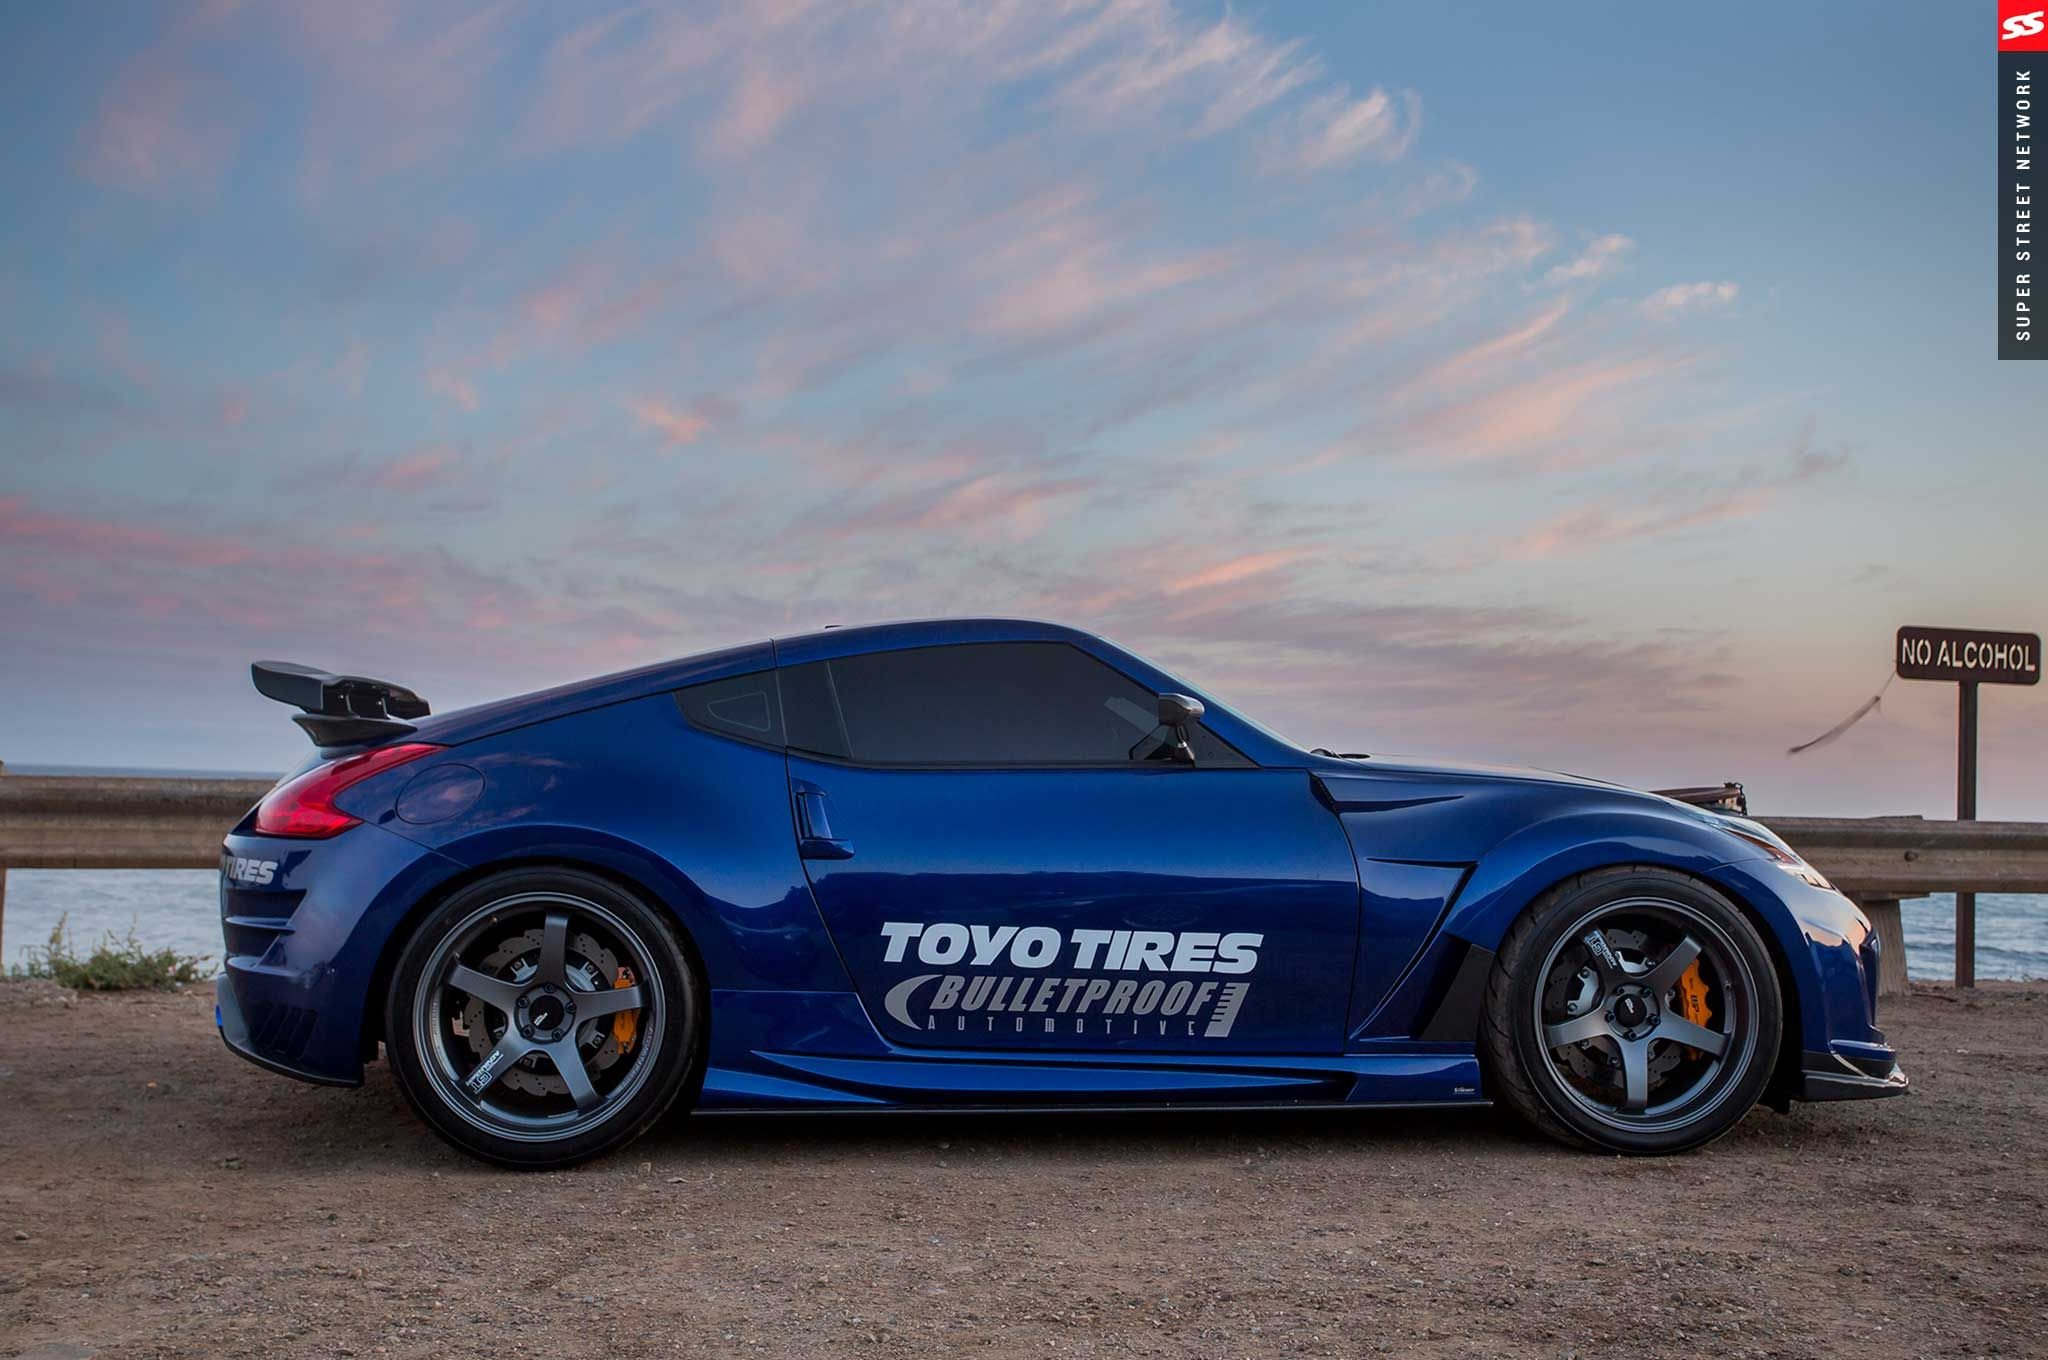 2009 Nissan 370z Coupe Blue Cars Modified Wallpaper 2048x1360 805049 Wallpaperup